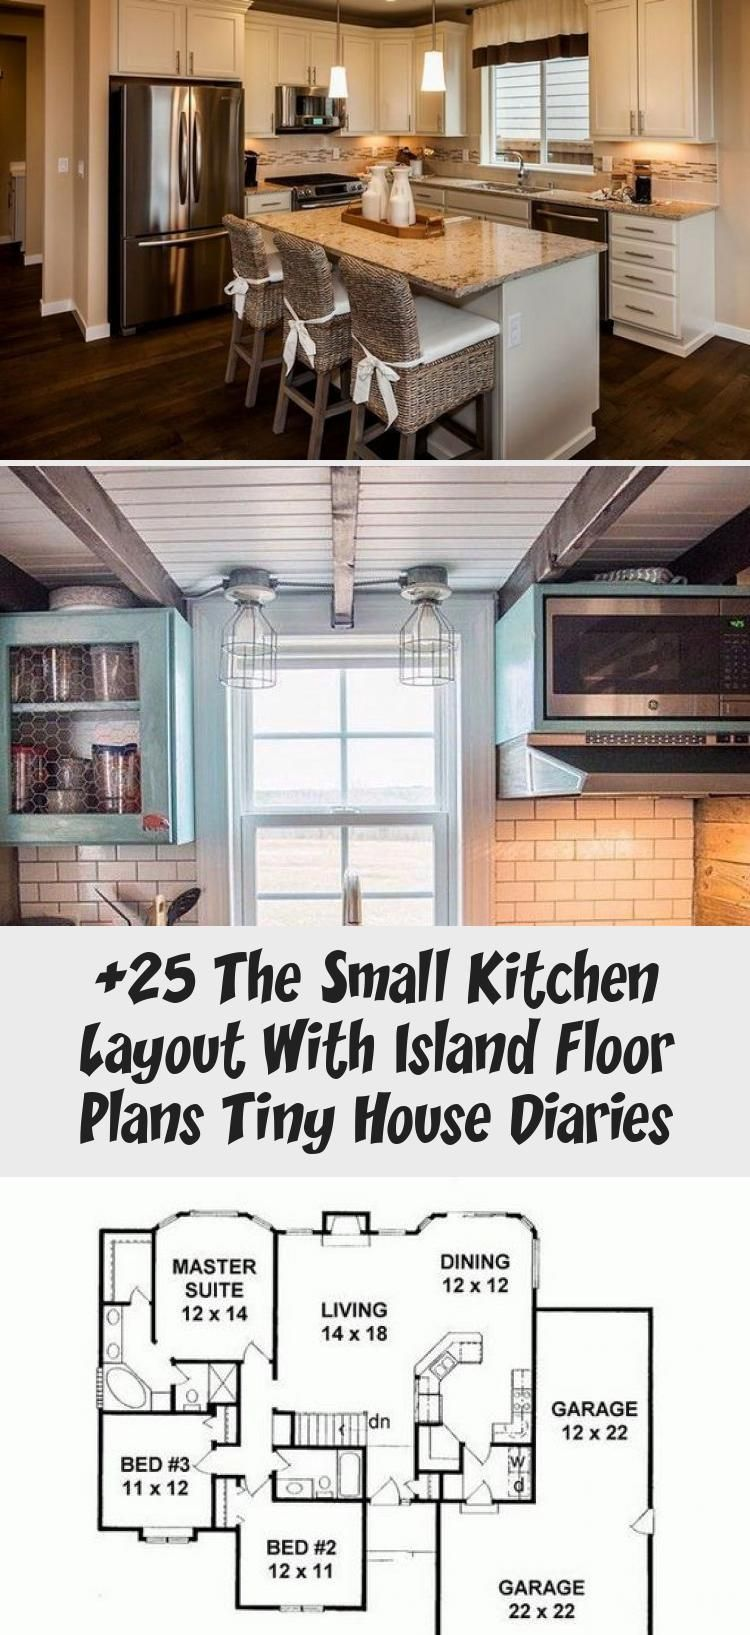 9 The Small Kitchen Layout with Island Floor Plans Tiny House ...